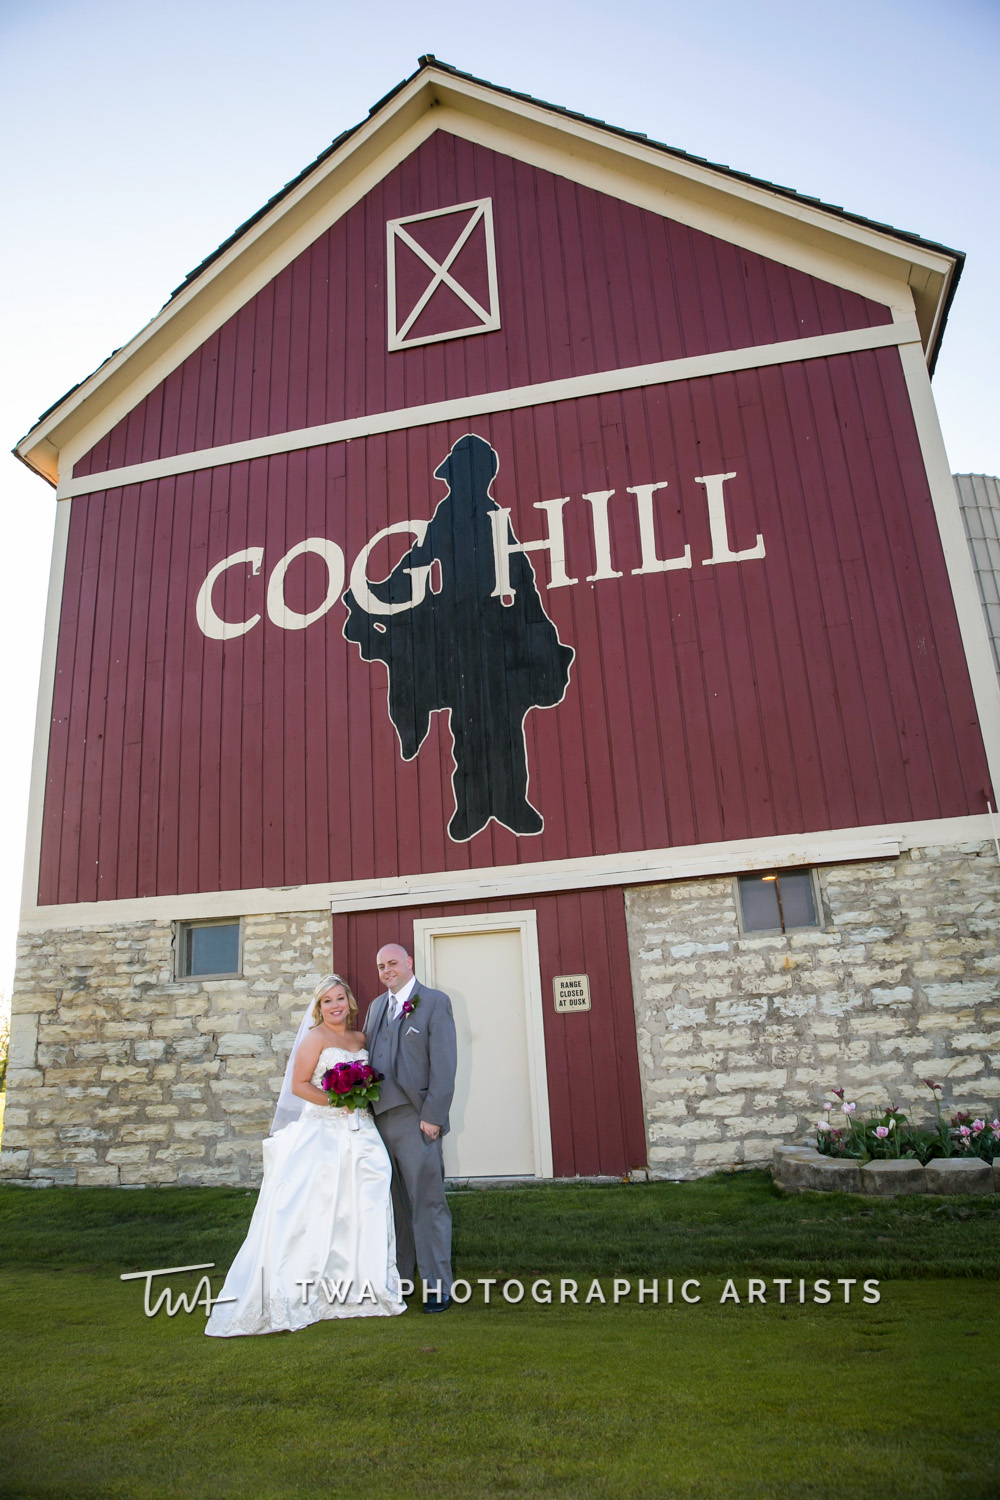 Weddings at Cog Hill Golf & Country Club | TWA Photographic Artists | Chicago Wedding Photographers